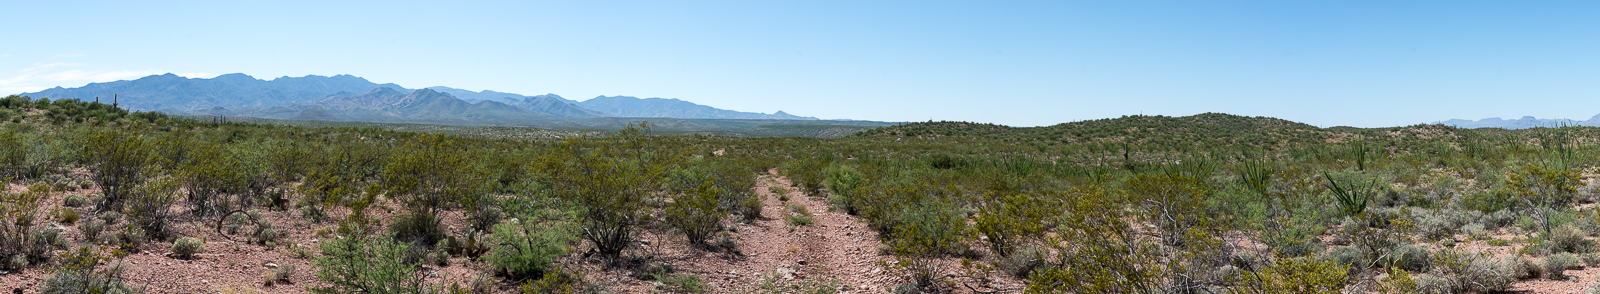 Seemingly endless creosote with the Santa Catalina Mountains in the distance, walking back to FR 4407 from Pink Tank. July 2016.